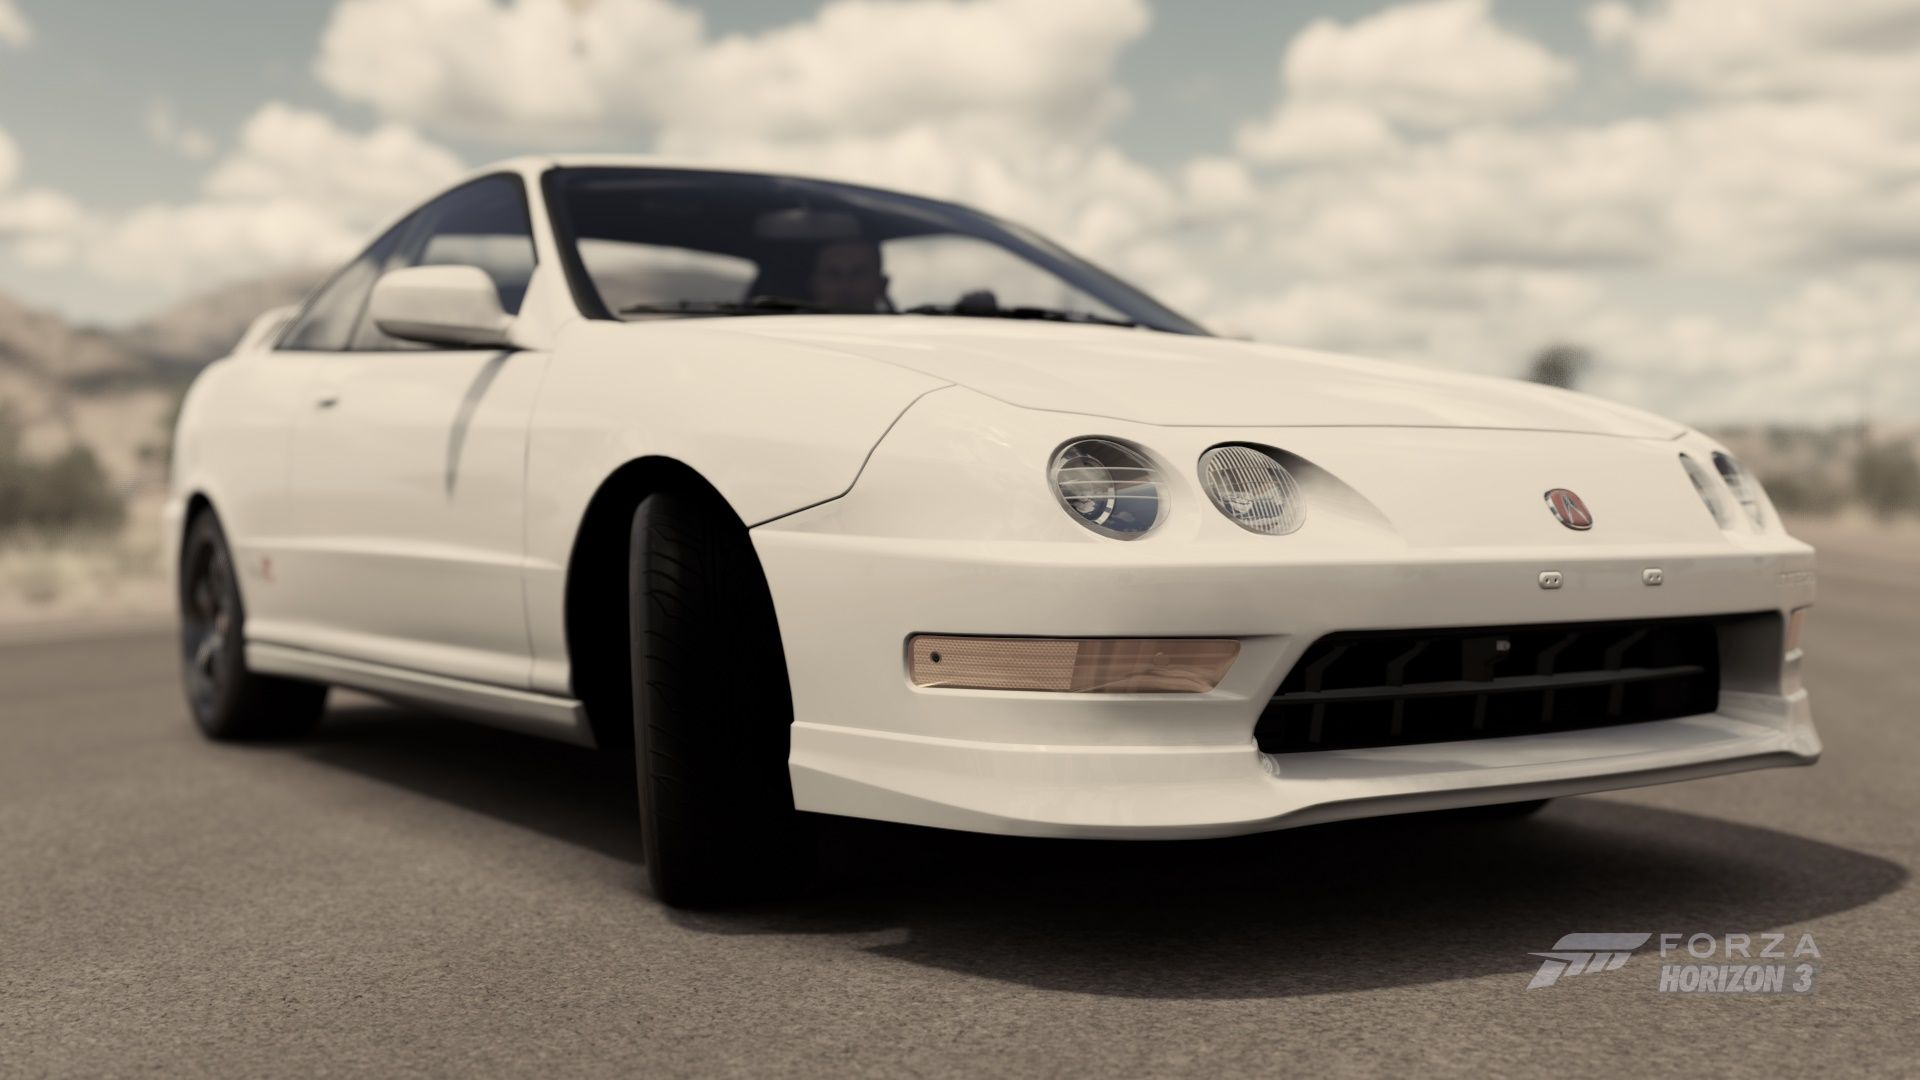 One of the coolest FWD cars, Acura Integra Type R : forza